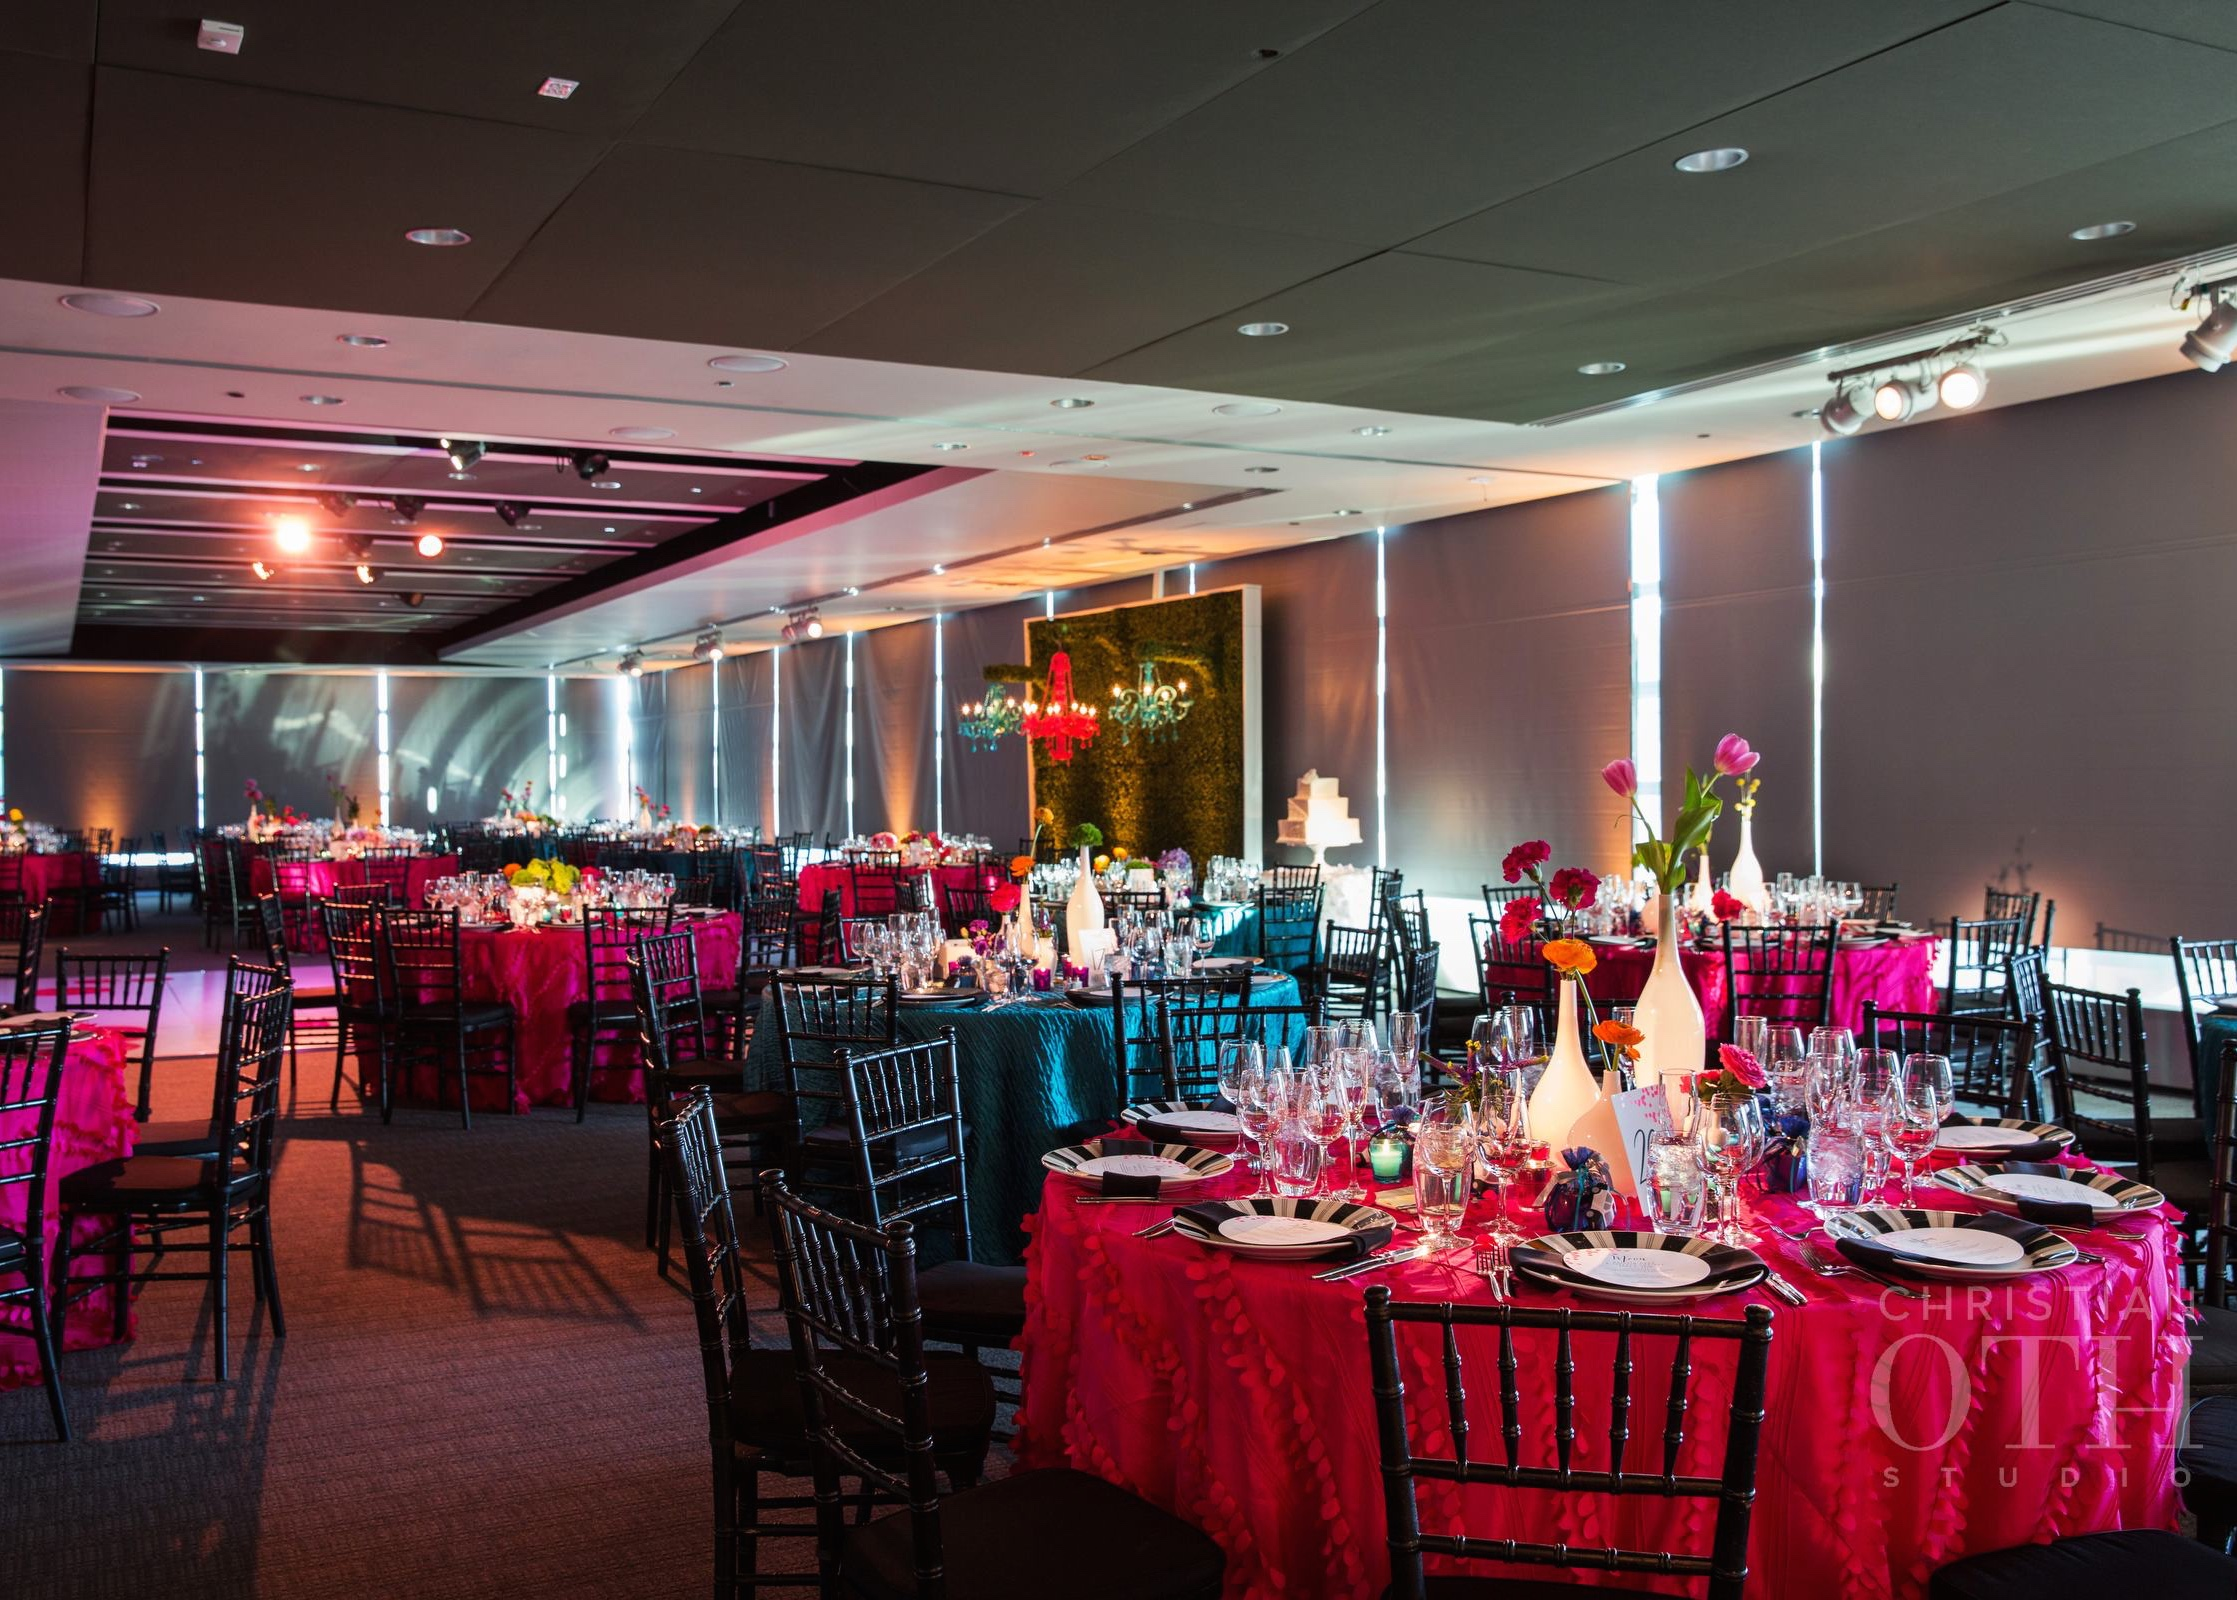 ELEGANT & WHIMSICAL DINNER EXPERIENCE WITH TWO LOOKS